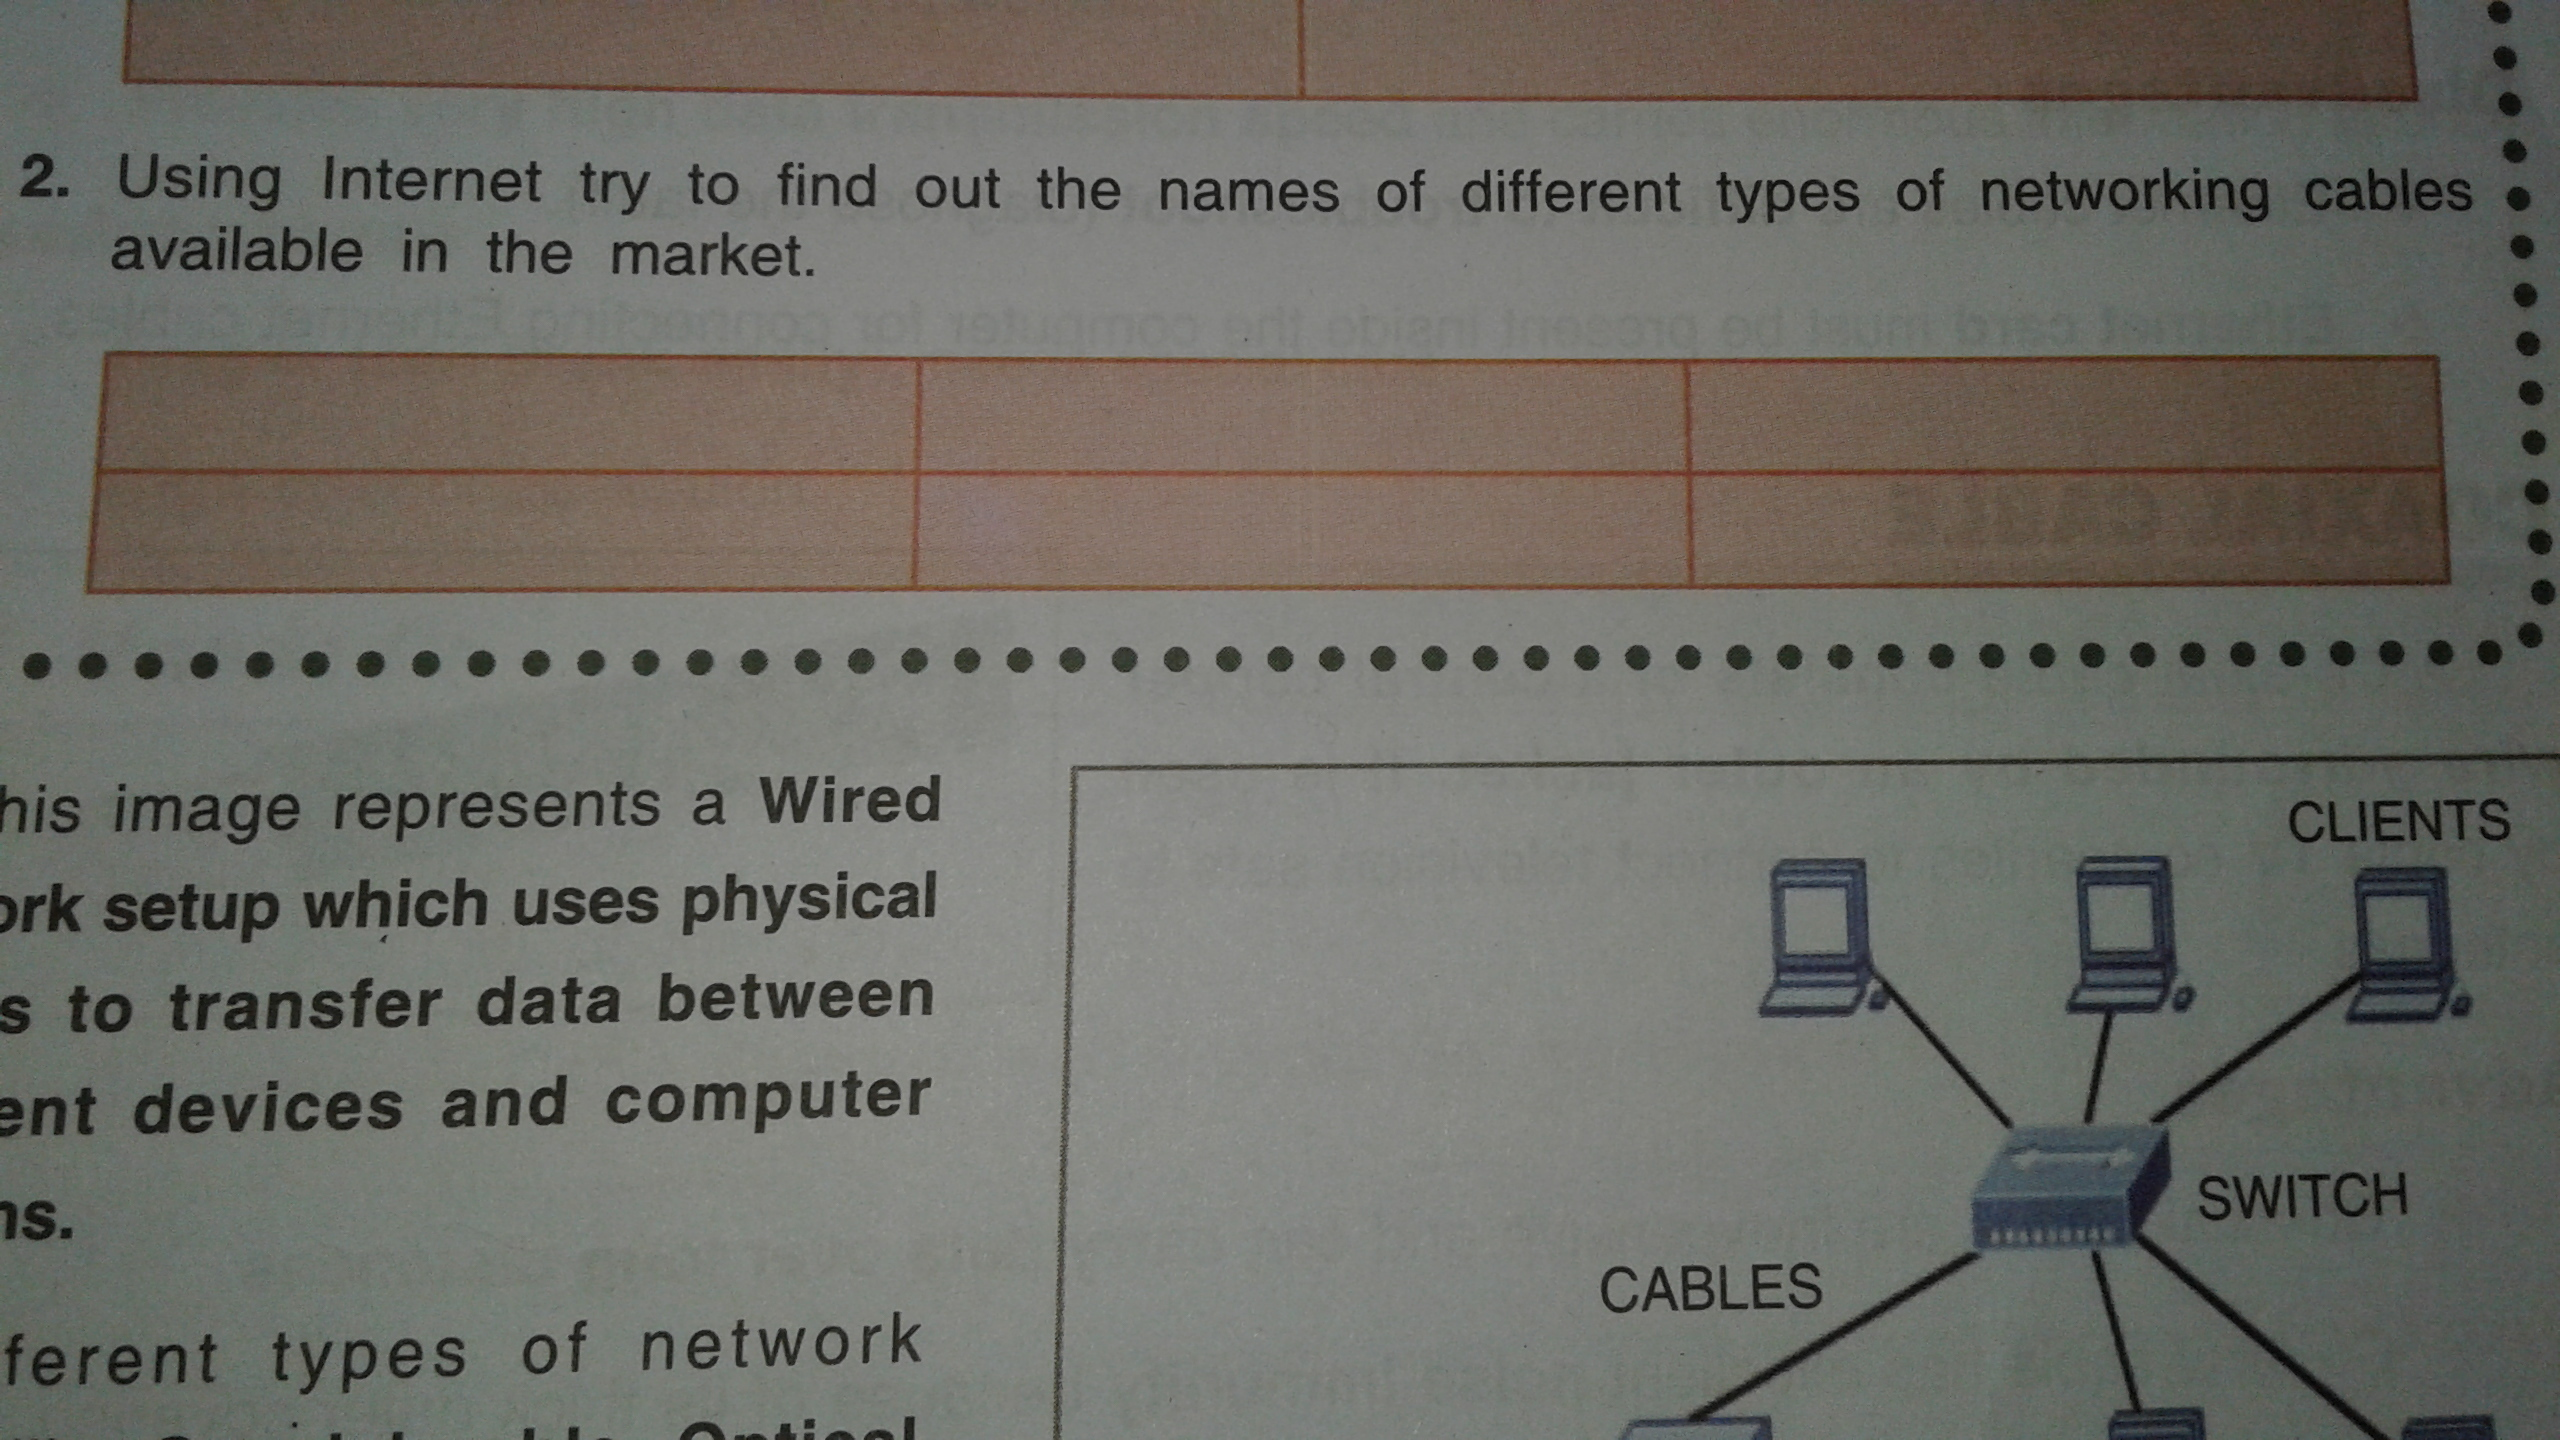 The Name Of Different Types Networking Cables Available In